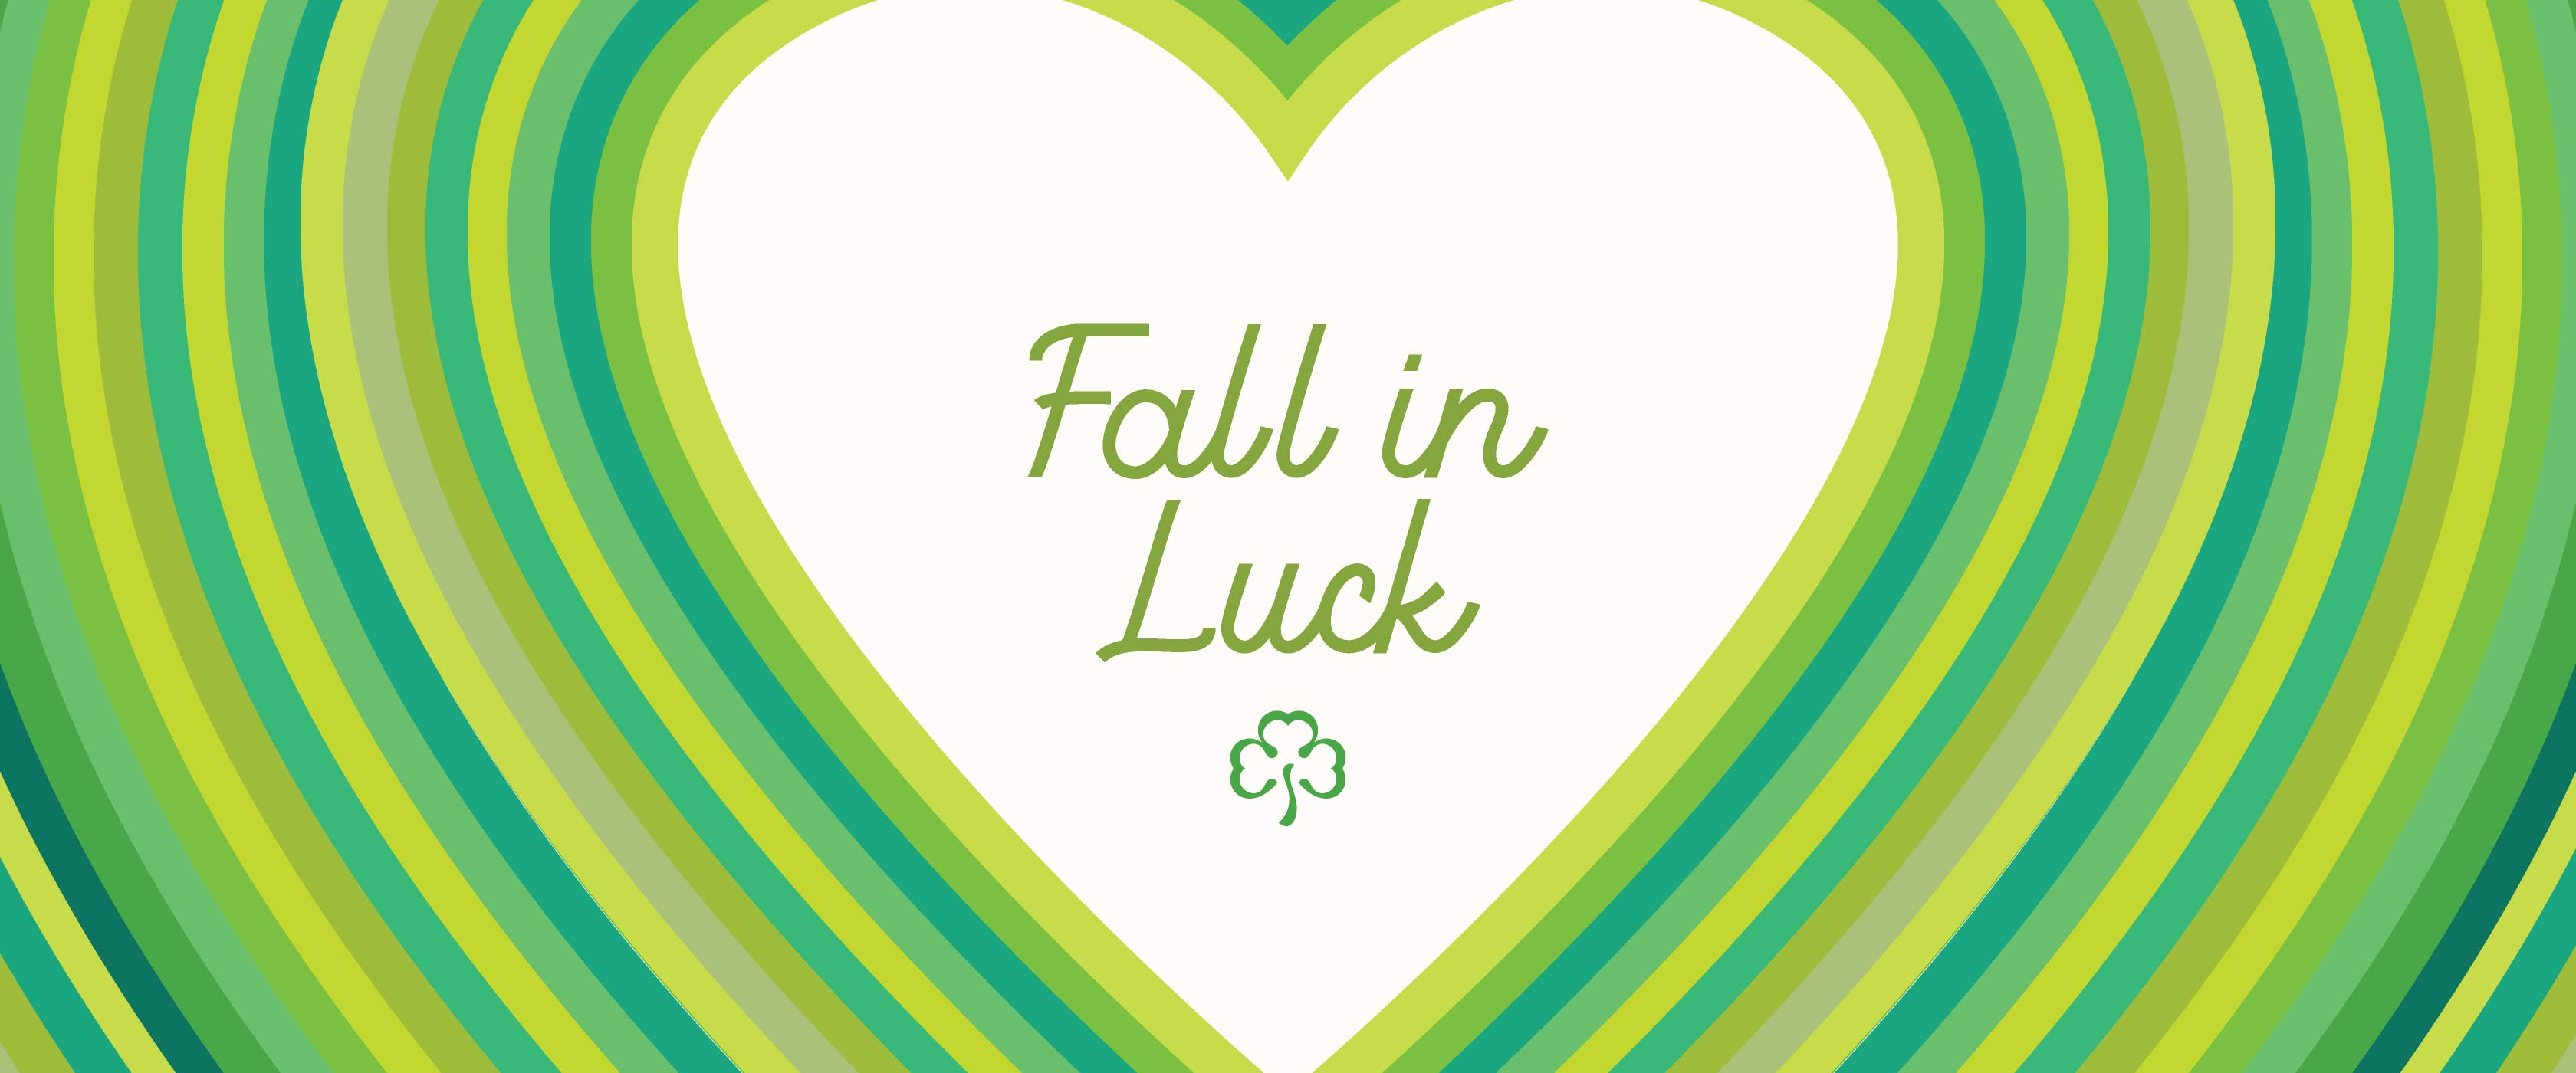 Fall in Luck